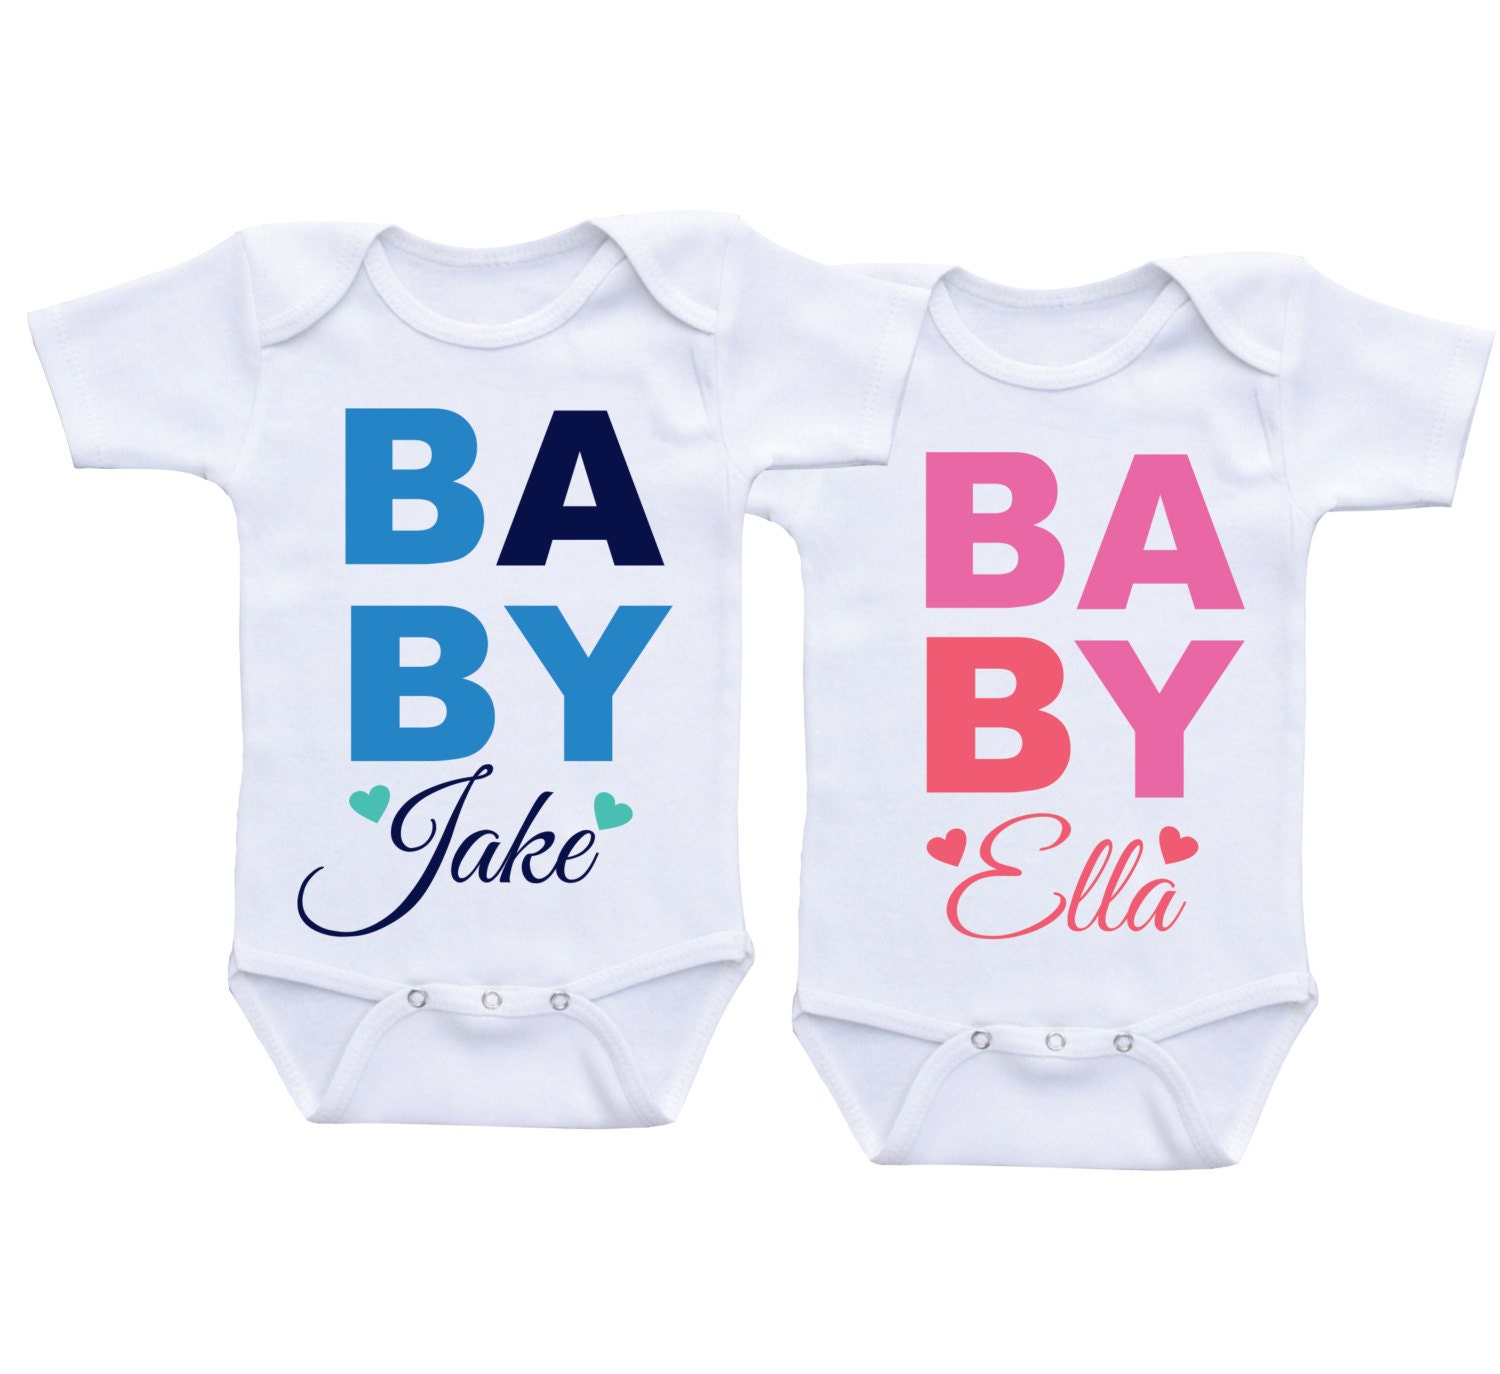 Baby Gift Sets For Twins : Twins baby gift twin onesie for boy girl twinstwins